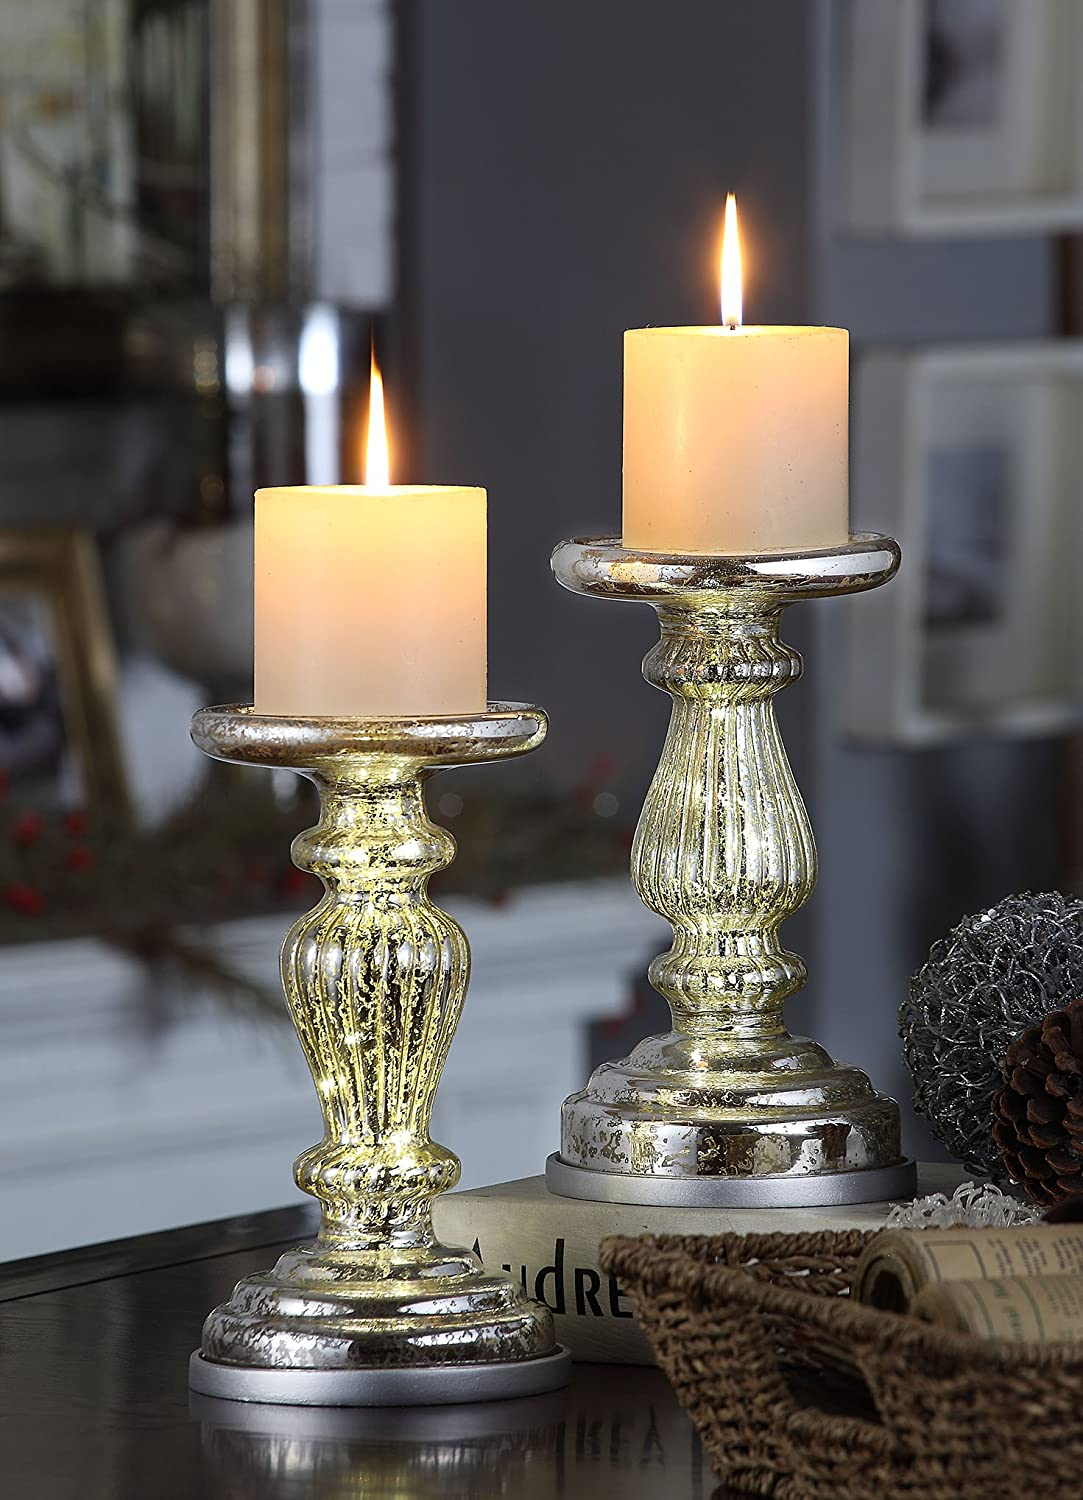 Silver Mercury Glass Lit Pillar Candle Holders Set of 2